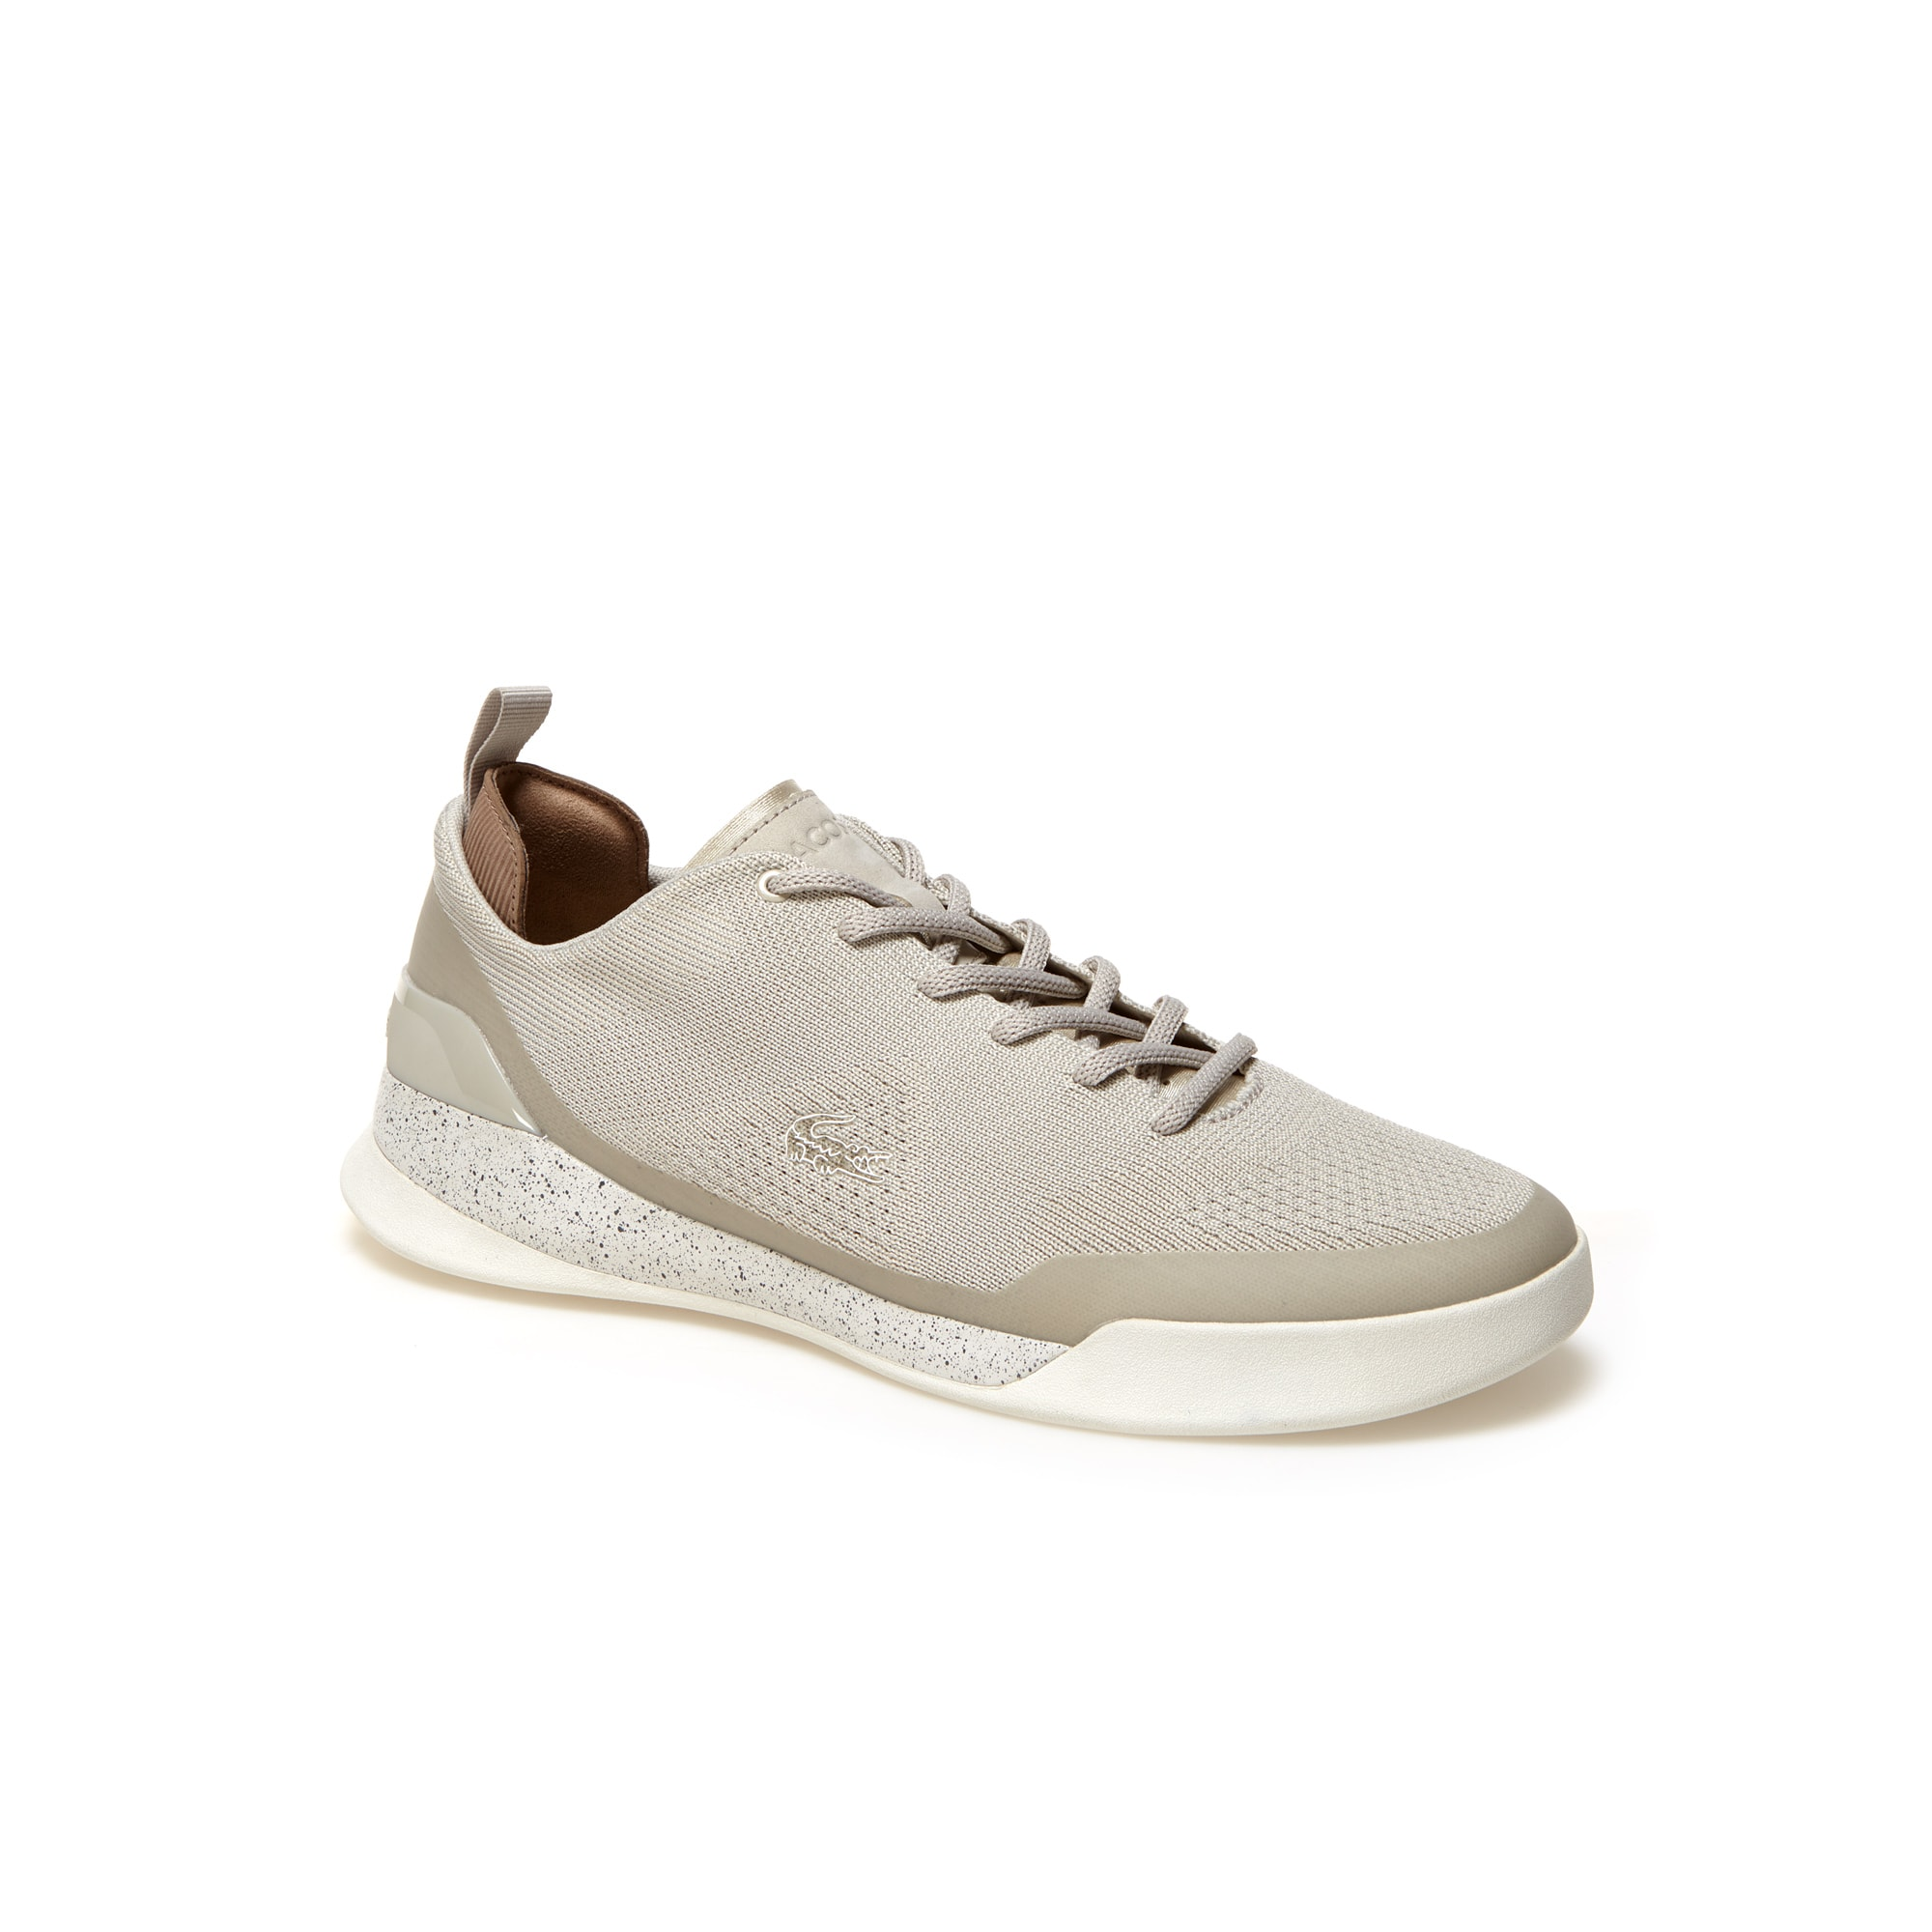 Men's LT Dual Elite Textile Trainers